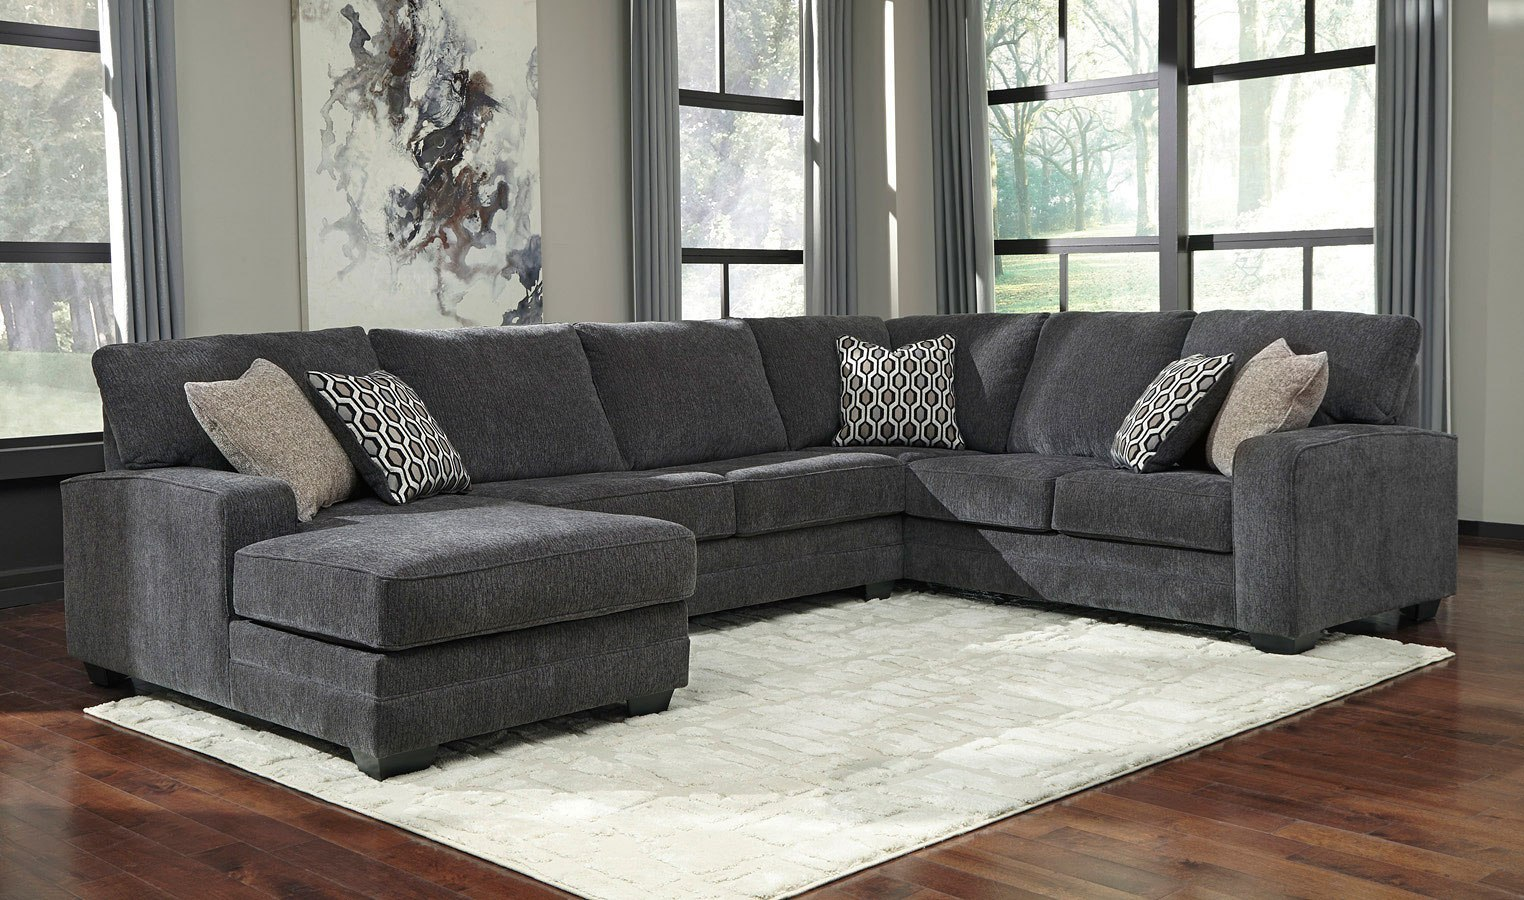 Tracling Slate Modular Sectional By Benchcraft Furniturepick